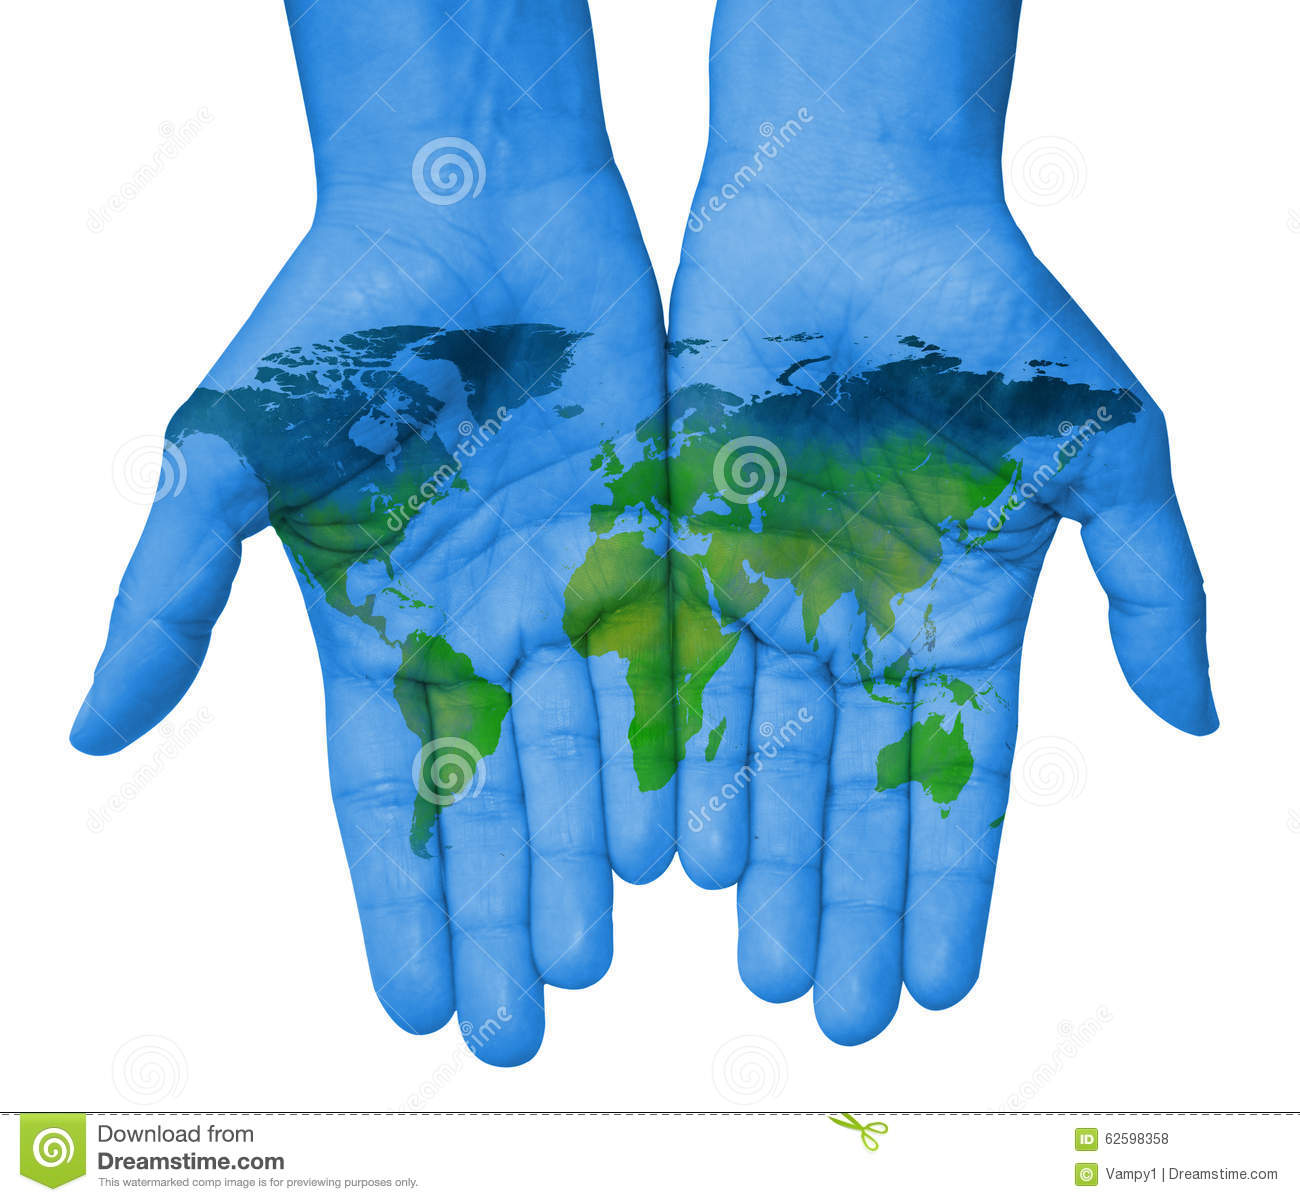 Hands with world map map of the world drawn stock illustration hands with world map map of the world drawn gumiabroncs Images